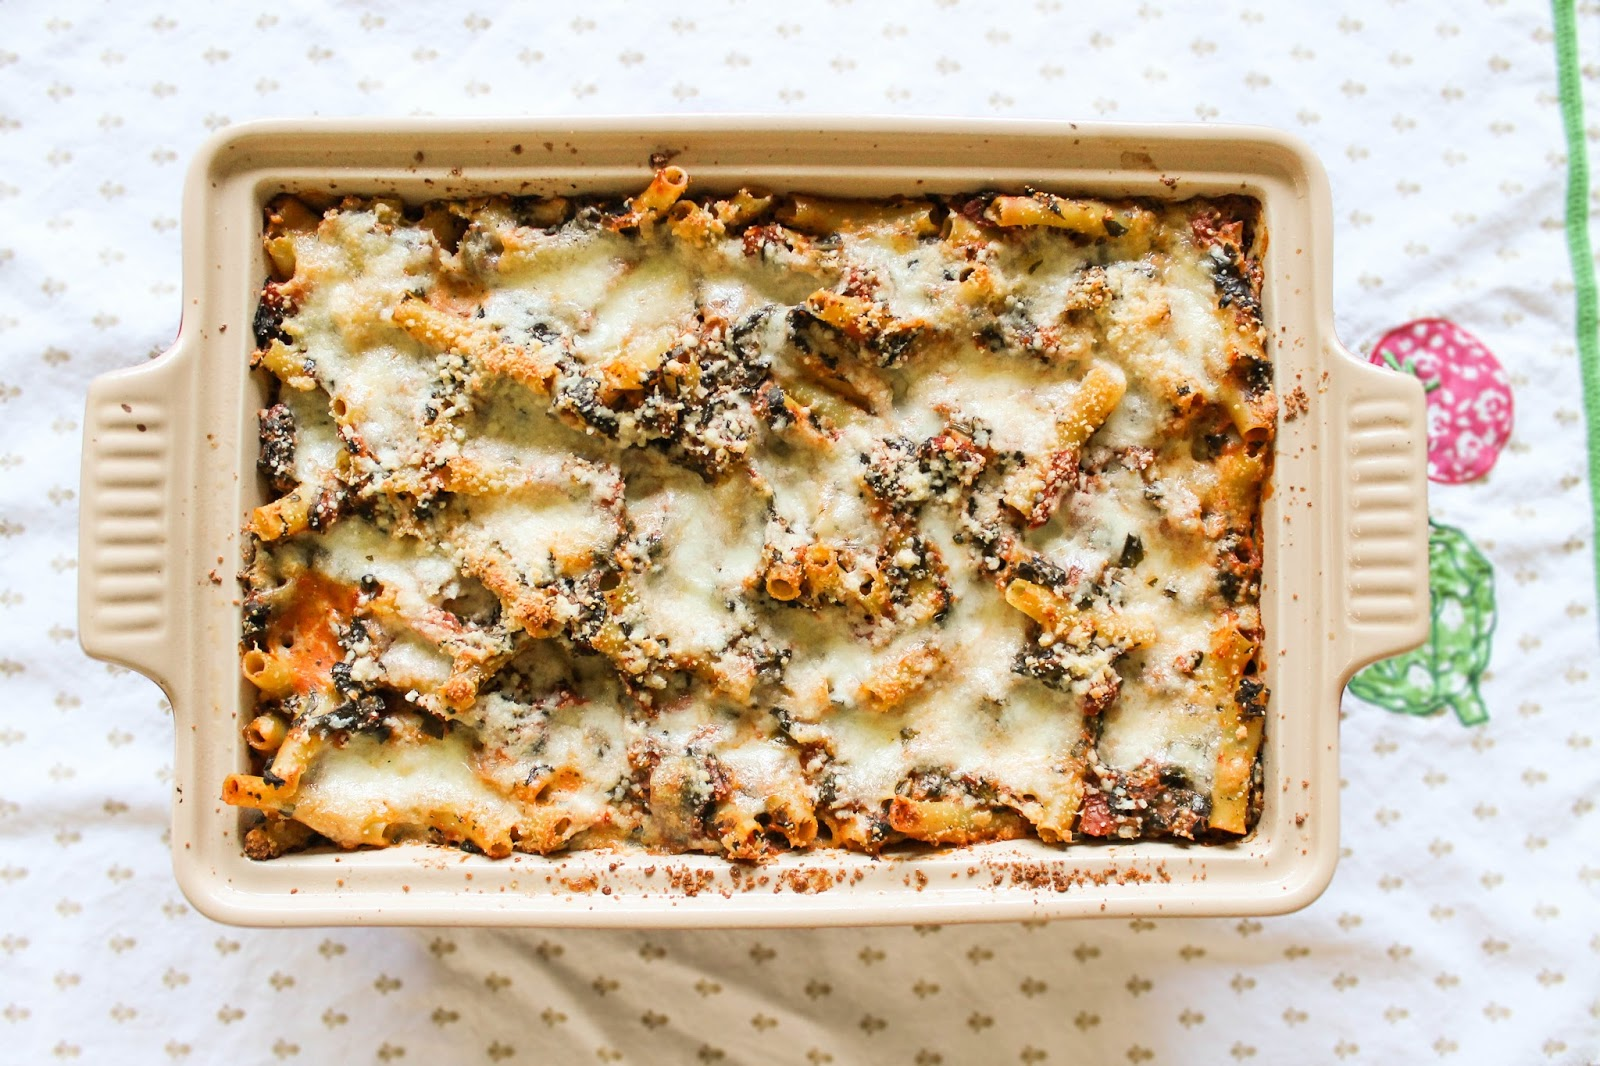 The Quixotic Table: Three Cheese Baked Ziti with Spinach